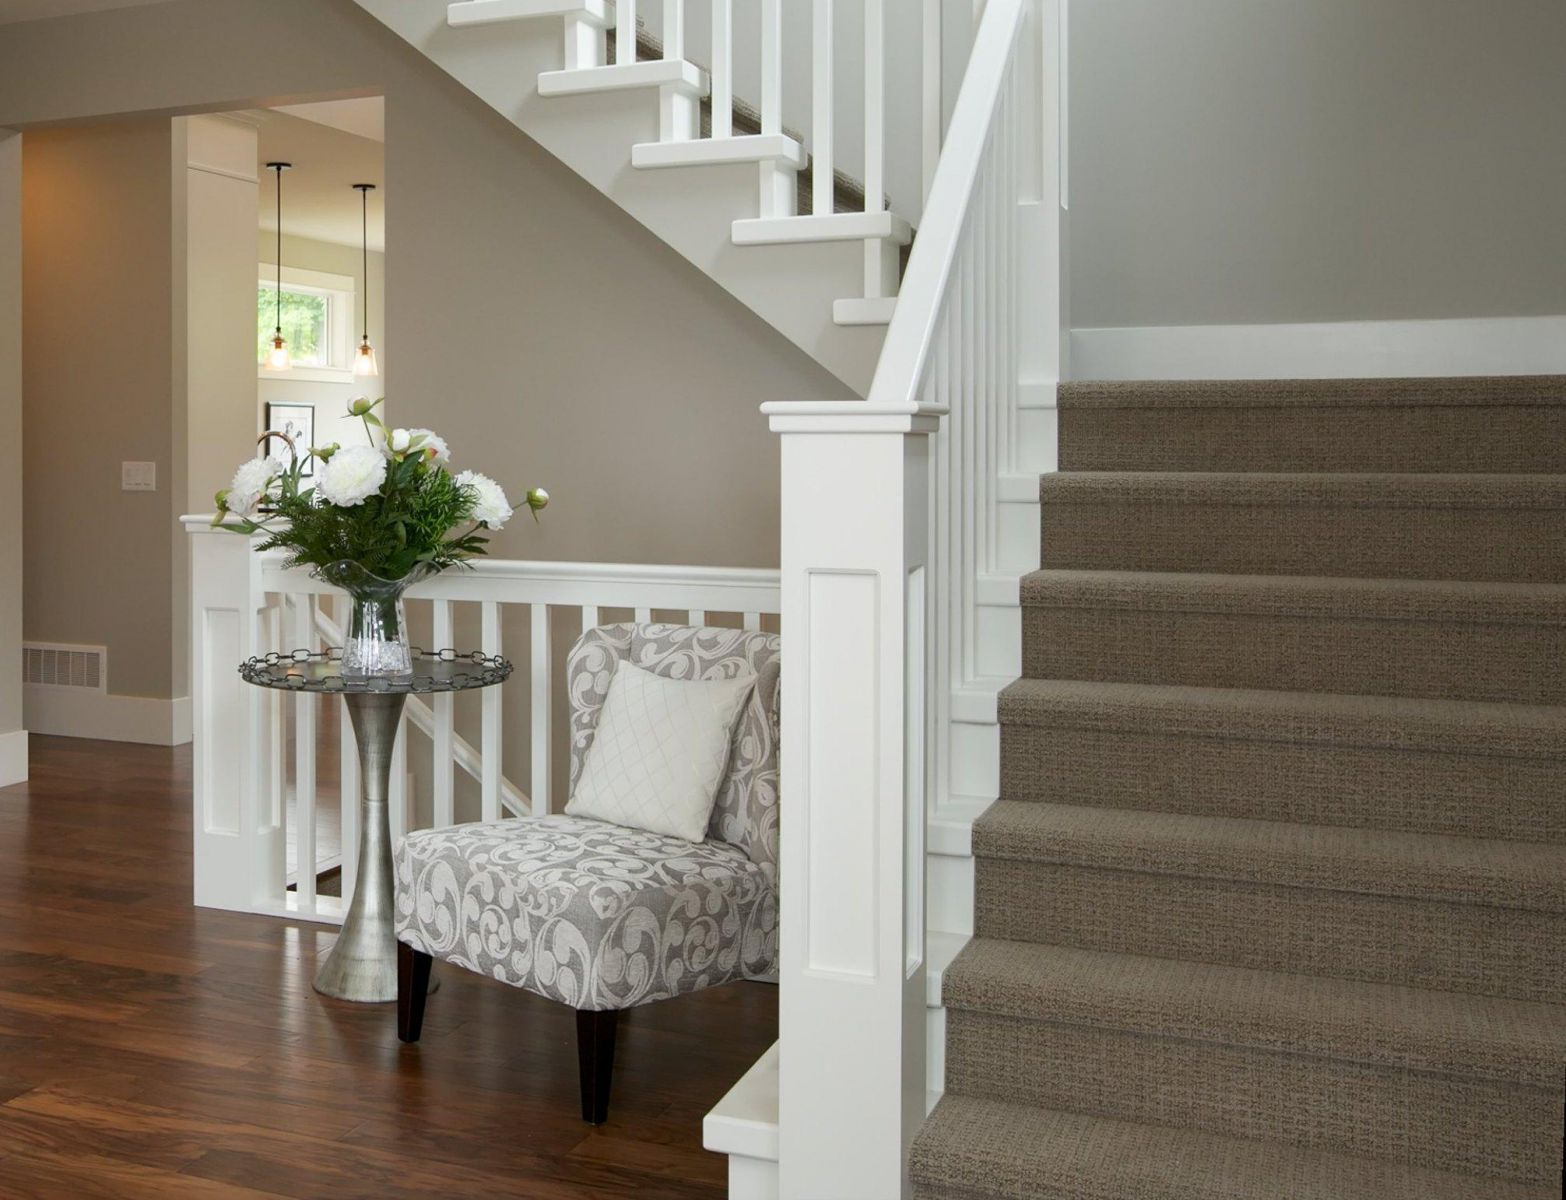 House Foyer Images : Styling tips for your foyer